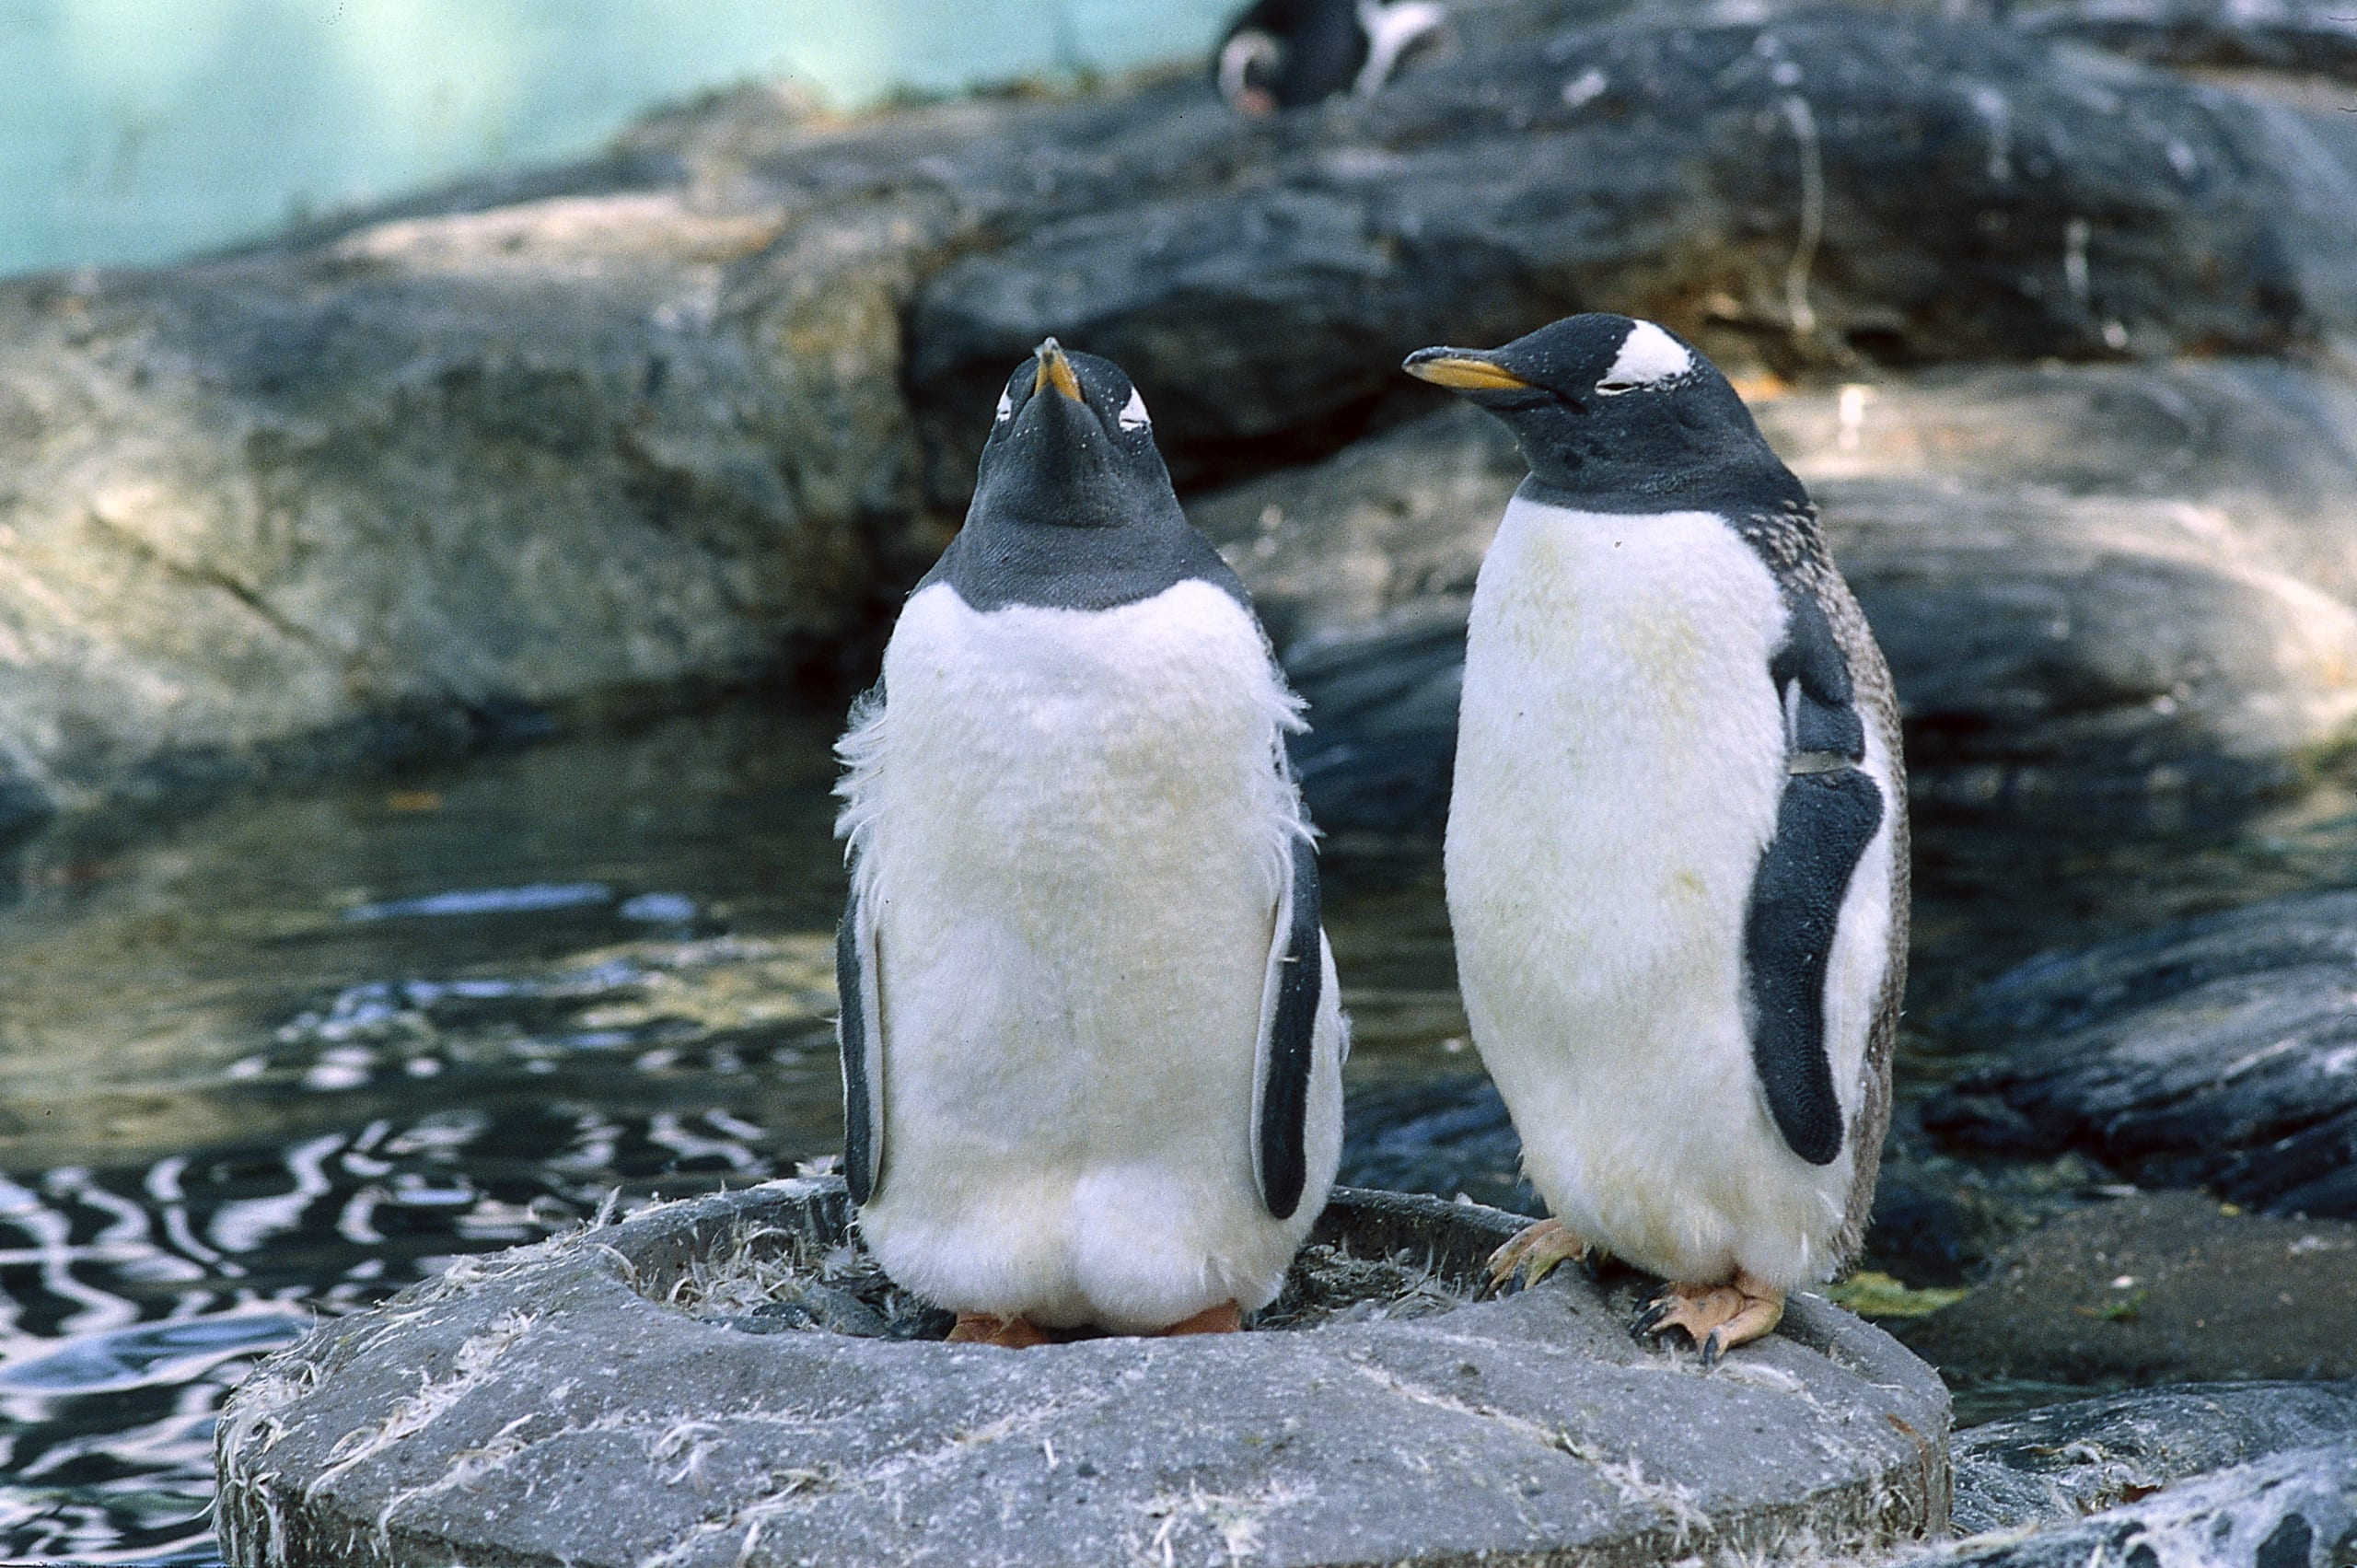 Penguins in the Aquarium in Bergen